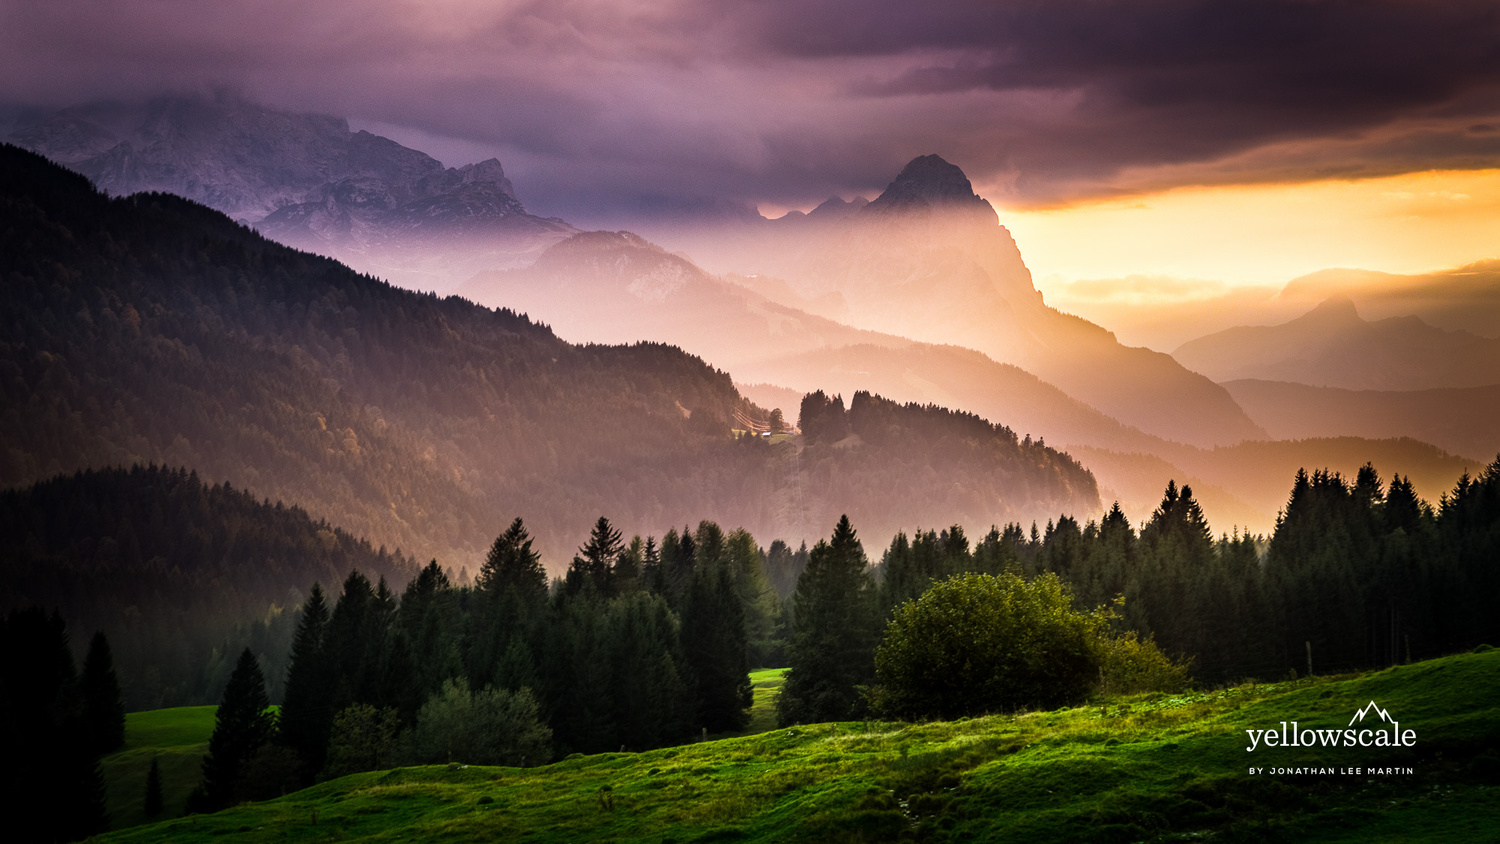 Layers in Geroldsee by Jonathan Lee Martin